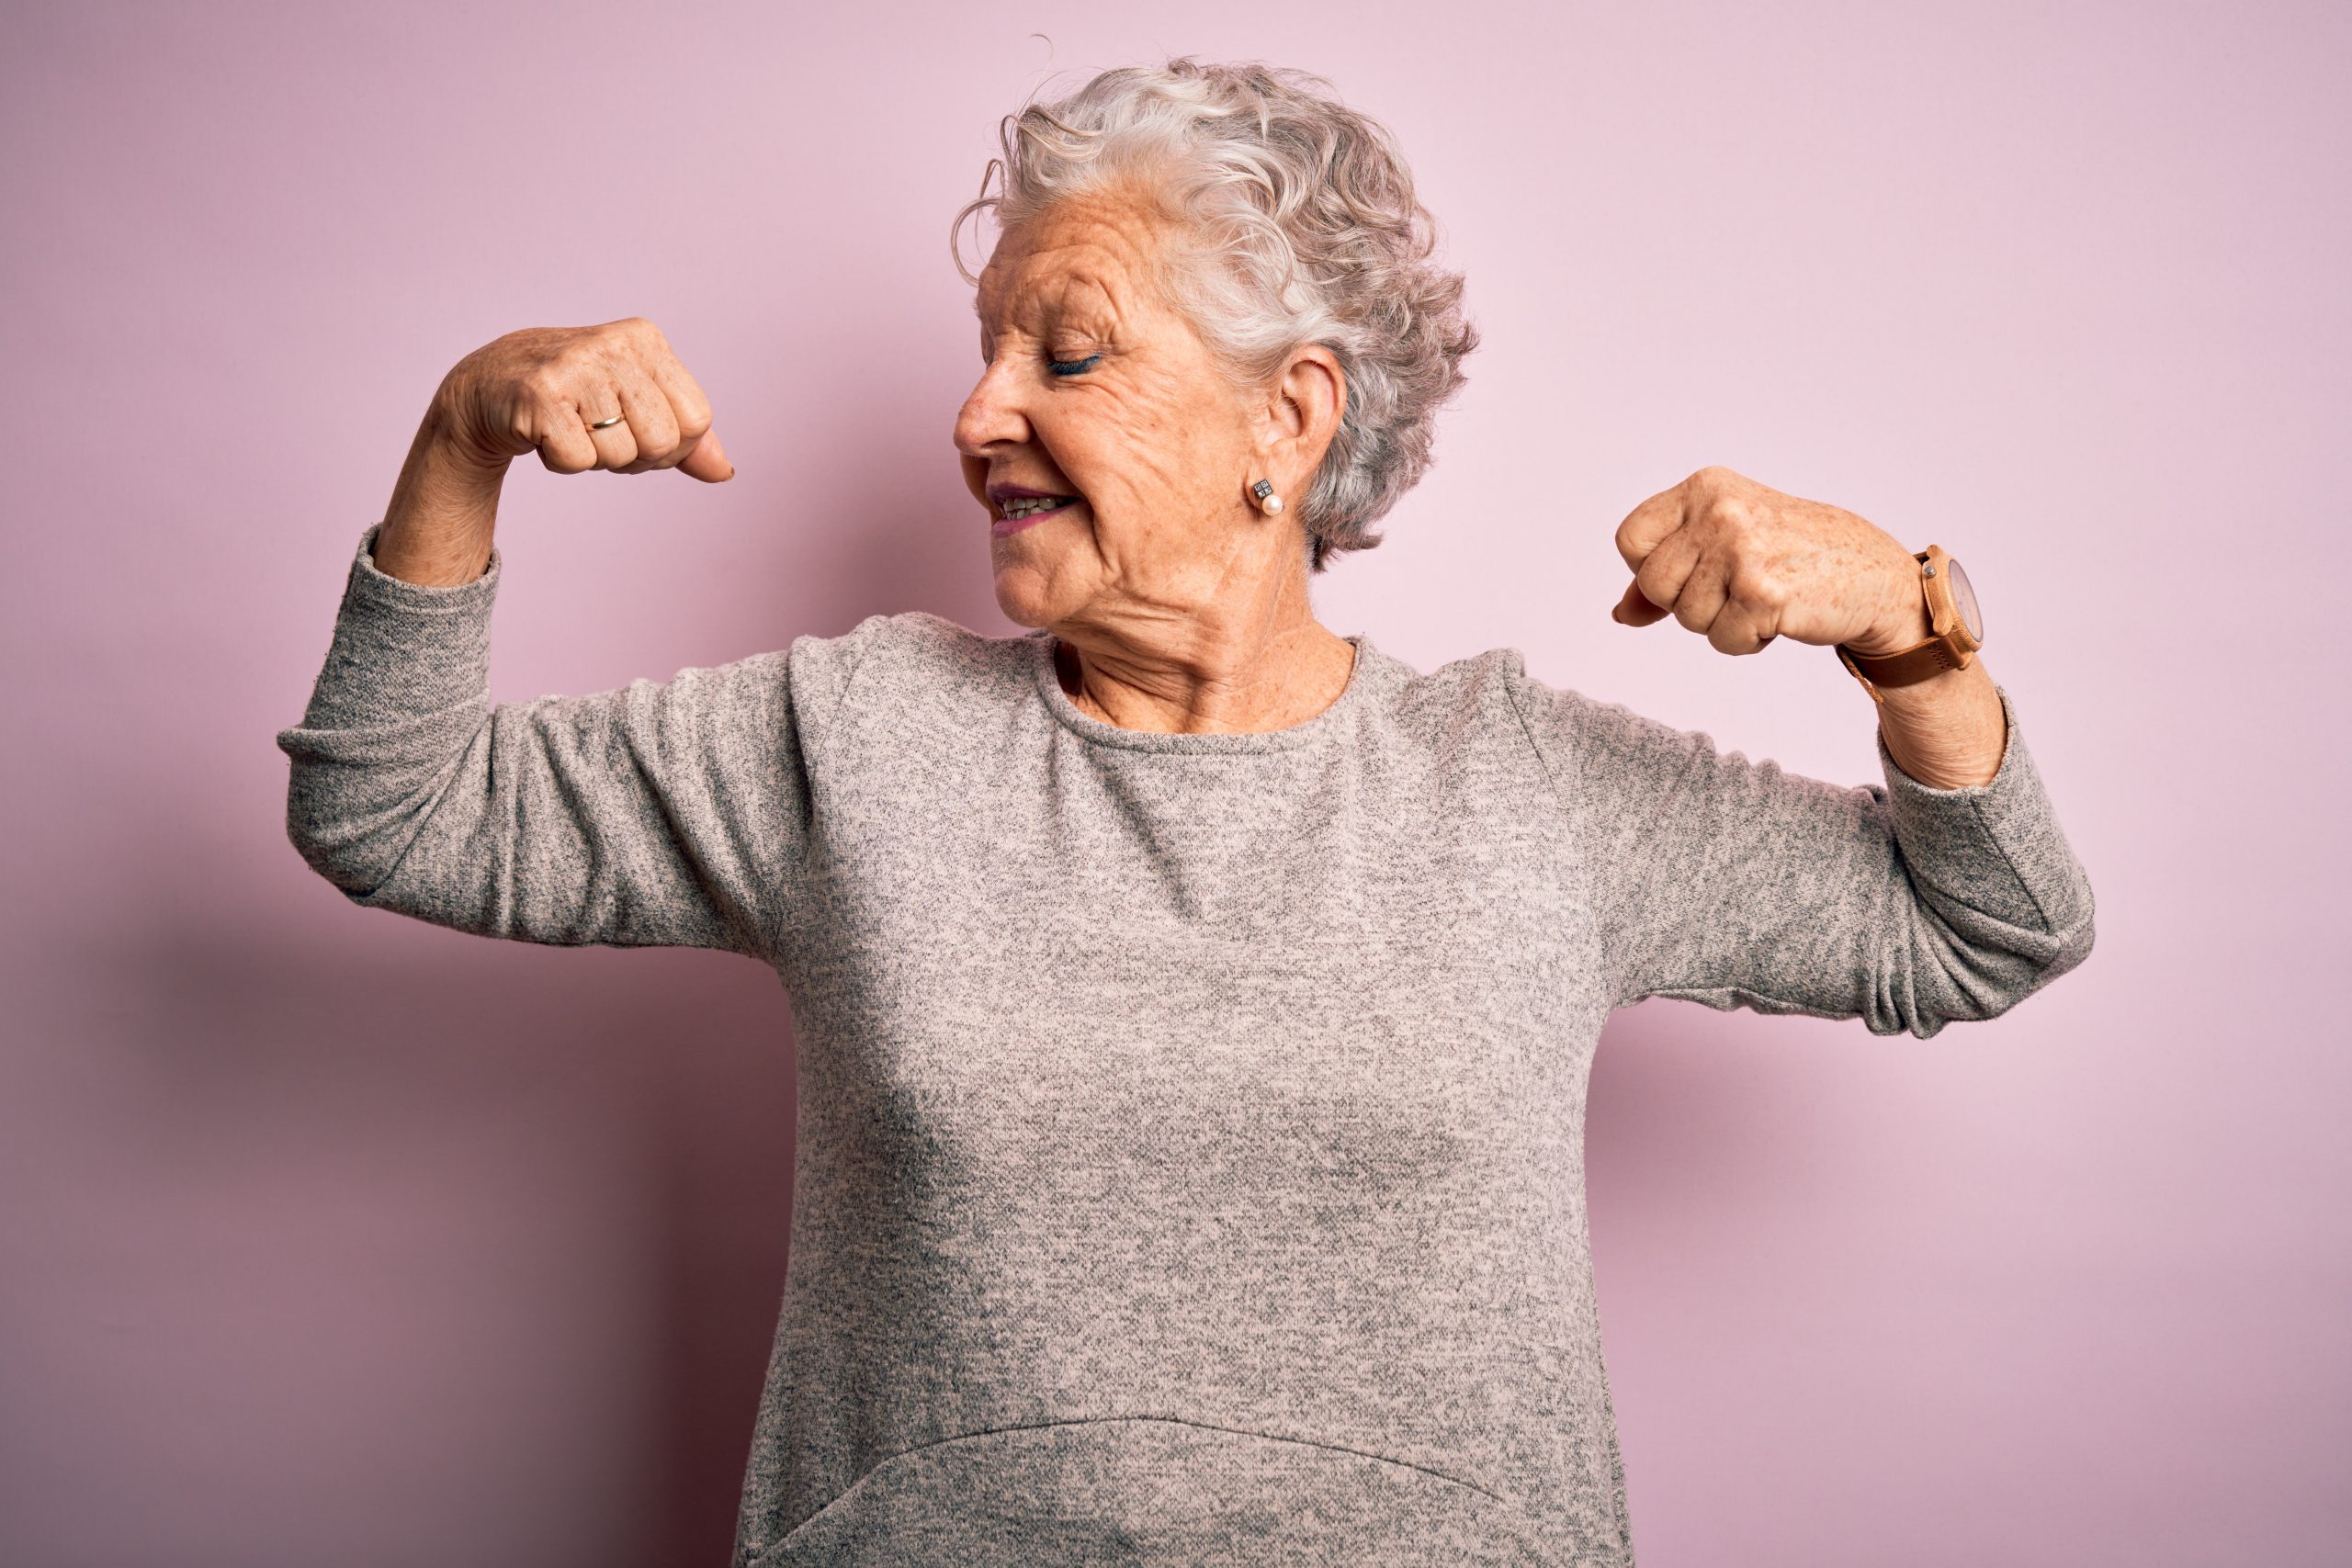 Senior beautiful woman wearing casual t-shirt standing over isolated pink background showing arms muscles smiling proud. Fitness concept.